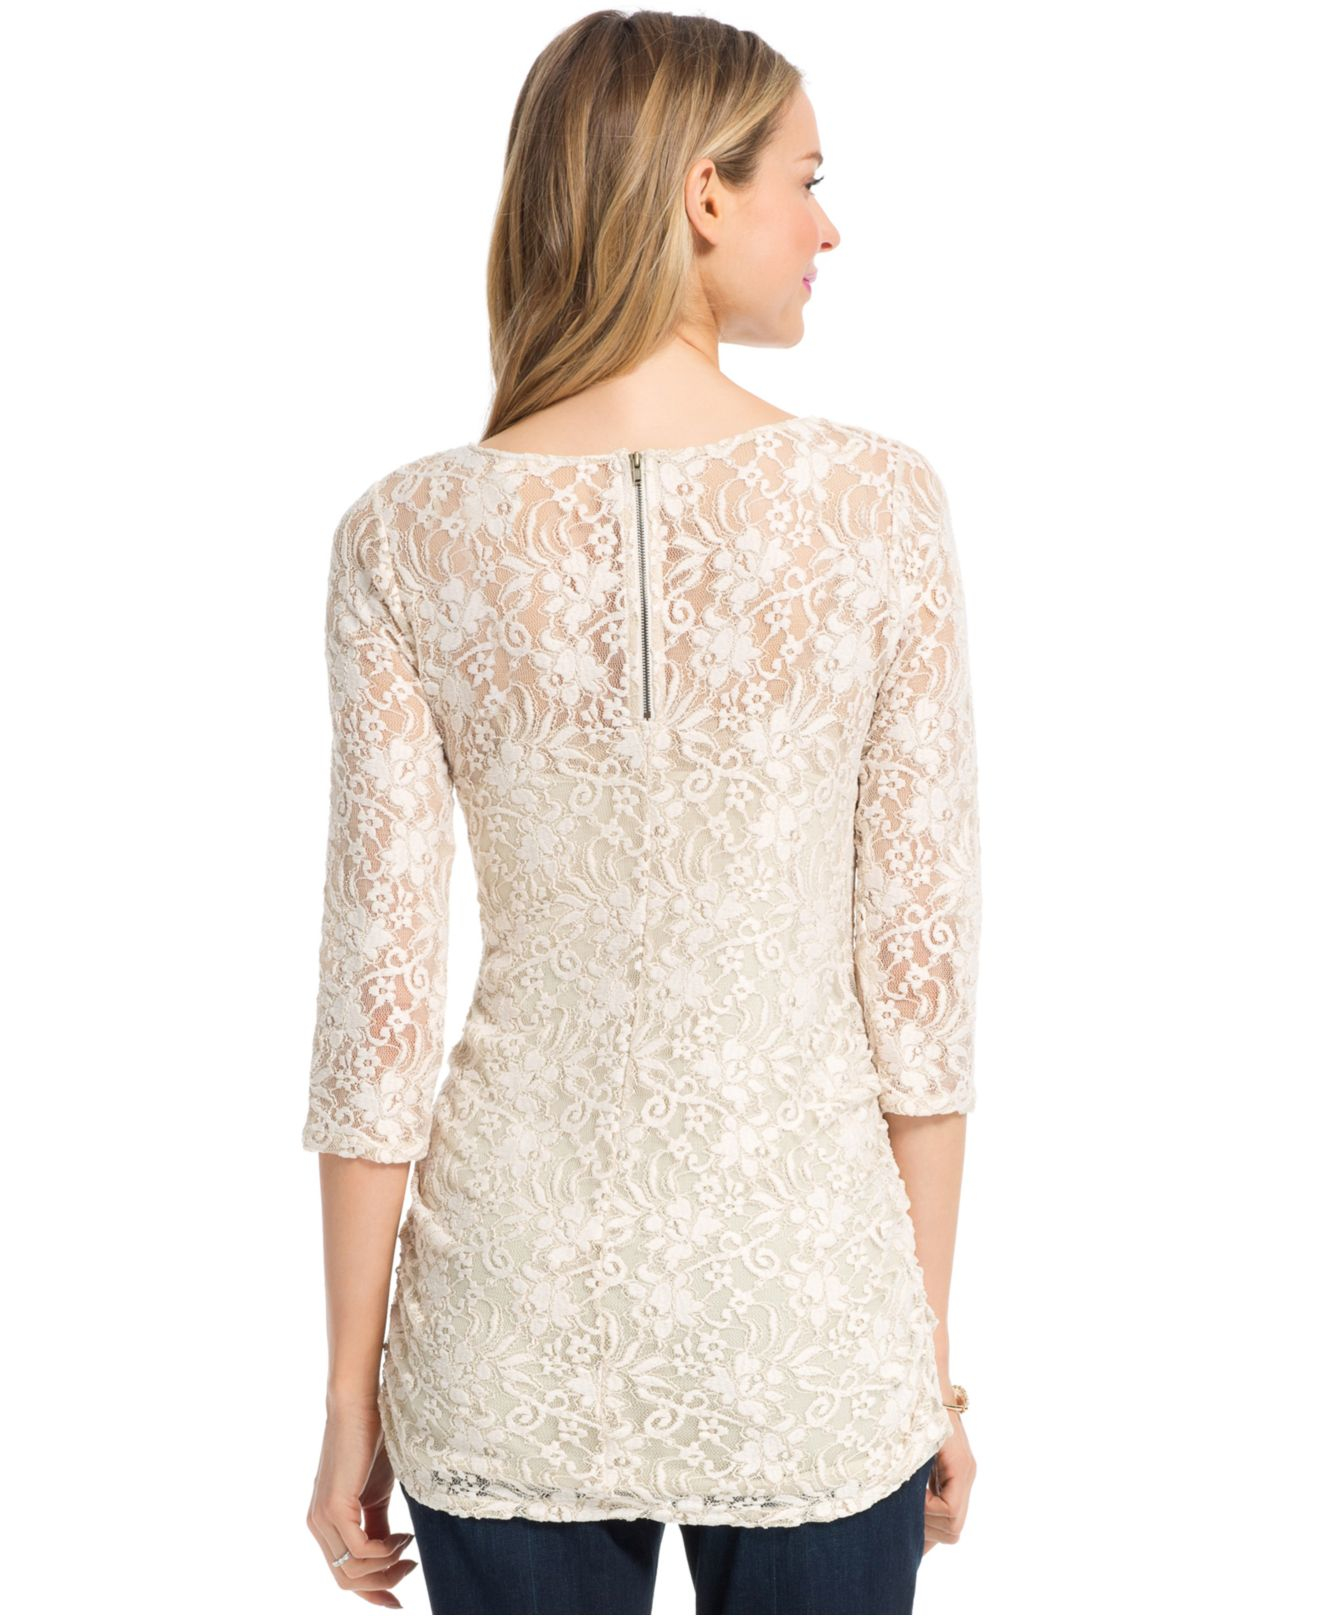 Jessica simpson maternity lace three quarter sleeve top in white gallery ombrellifo Gallery